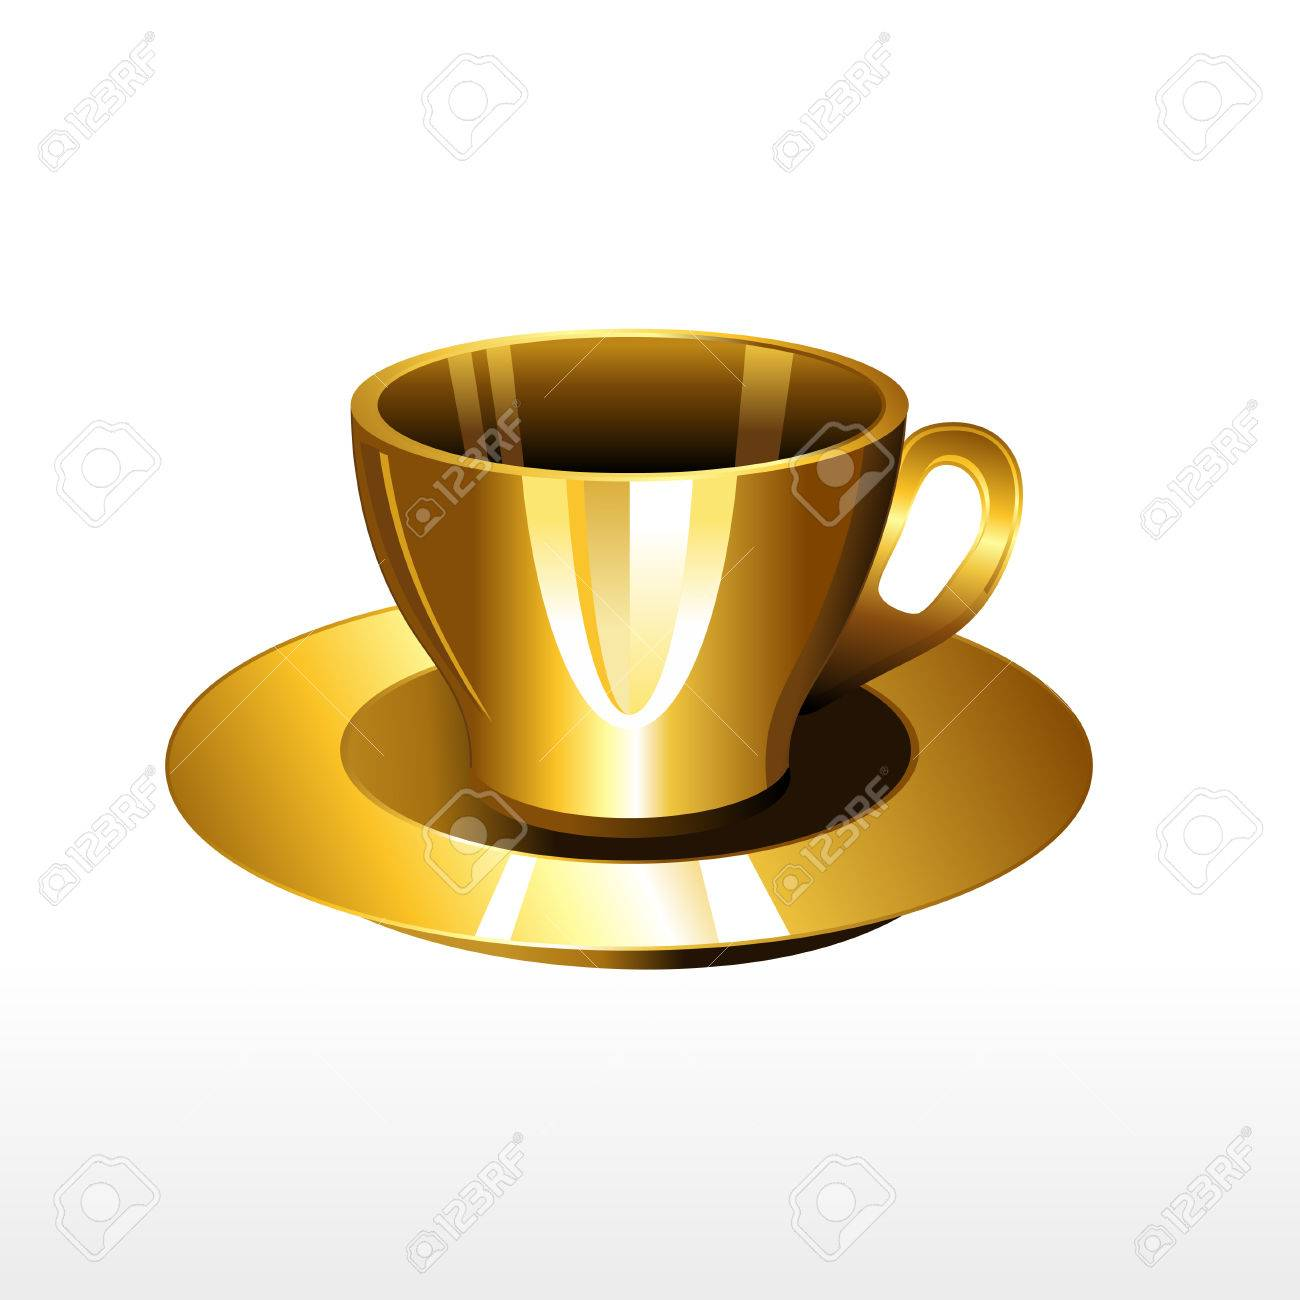 Coffee cup vector free - Golden Cup Of Coffee Illustration Gold Coffee Cup Vector Stock Vector 41620604